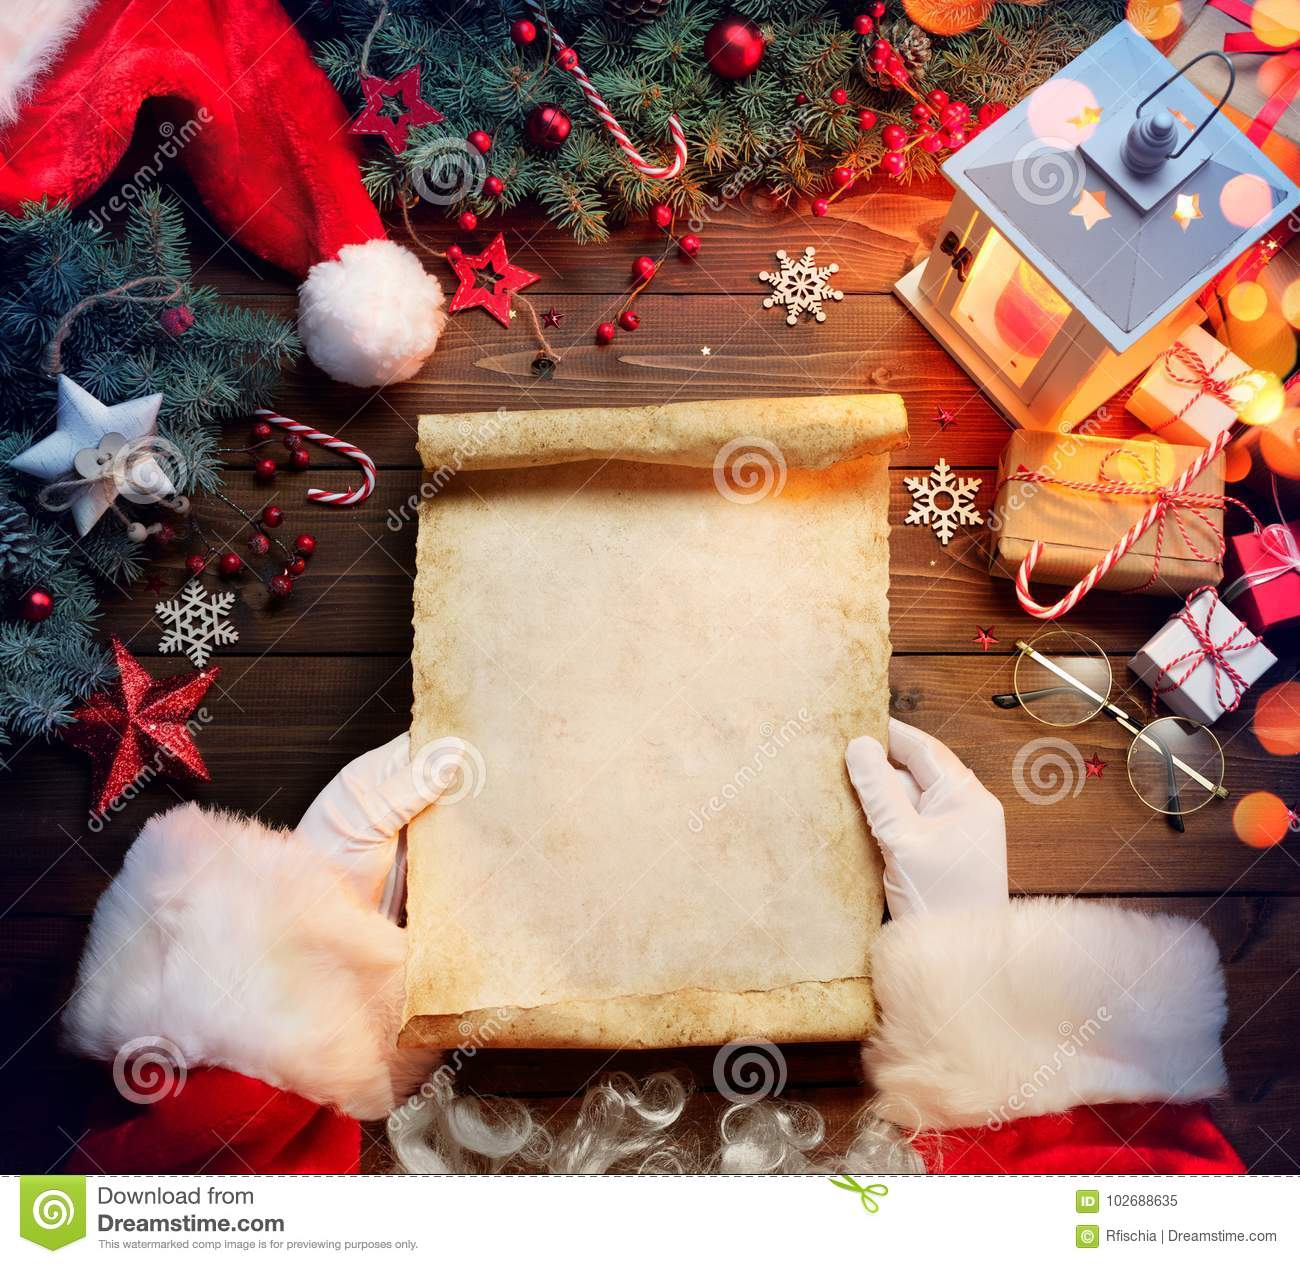 Santa Claus Desk Reading Wish List With Ornament Stock Image Image